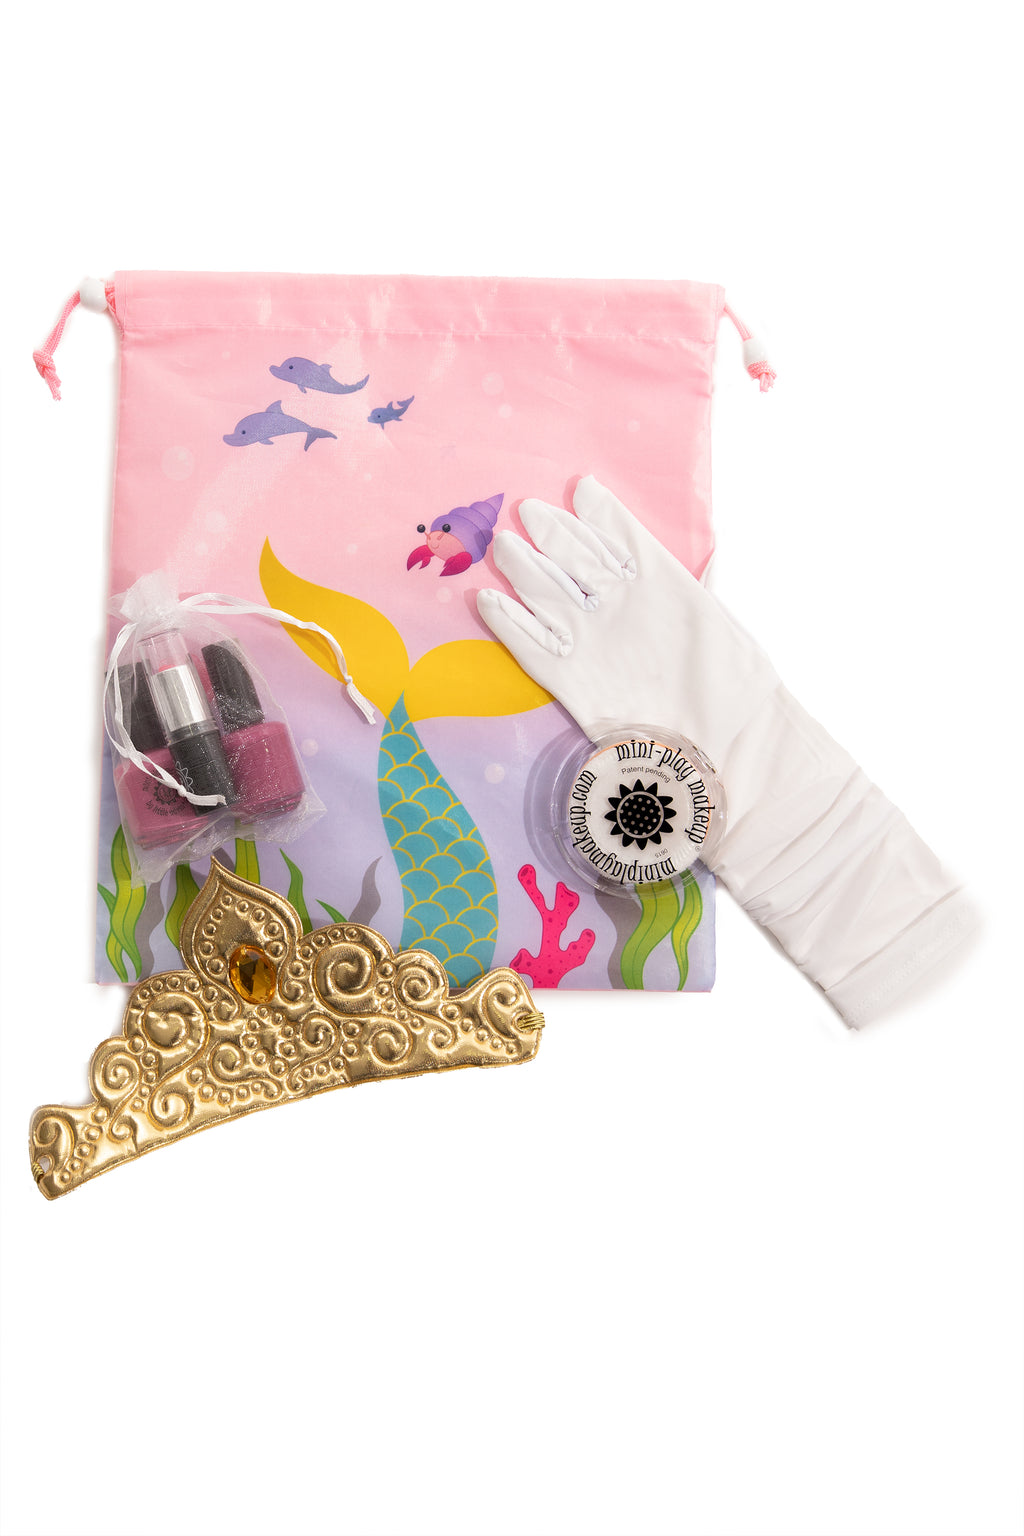 Princess Accessory Gift Set